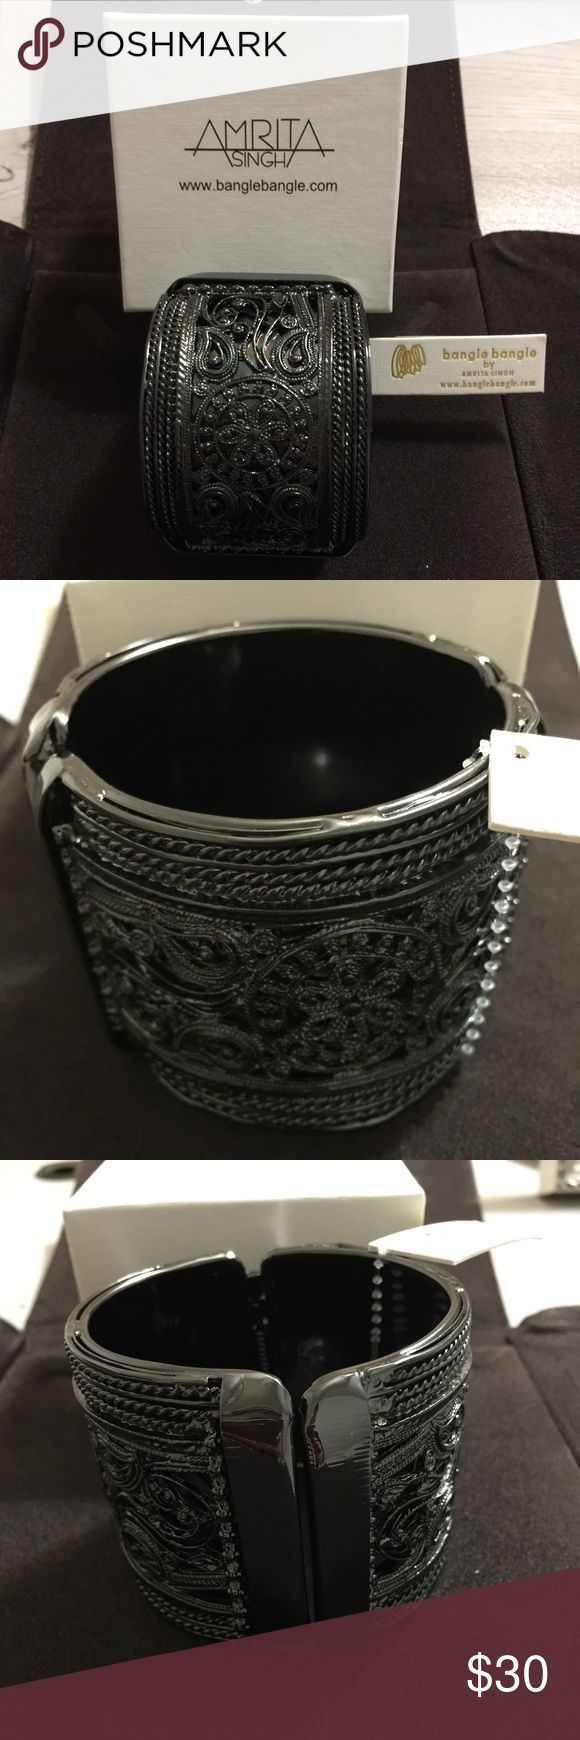 "NWT Amrita Singh Gunmetal Bangle Bracelet Brand new with tags and in plastic and box Amrita Singh Gunmetal cuff Bangle Bracelet. Gunmetal color. Paisley print. Approx 9.5"" around. Style number: KB276. Lead free and nickel free. Amrita Singh Jewelry"